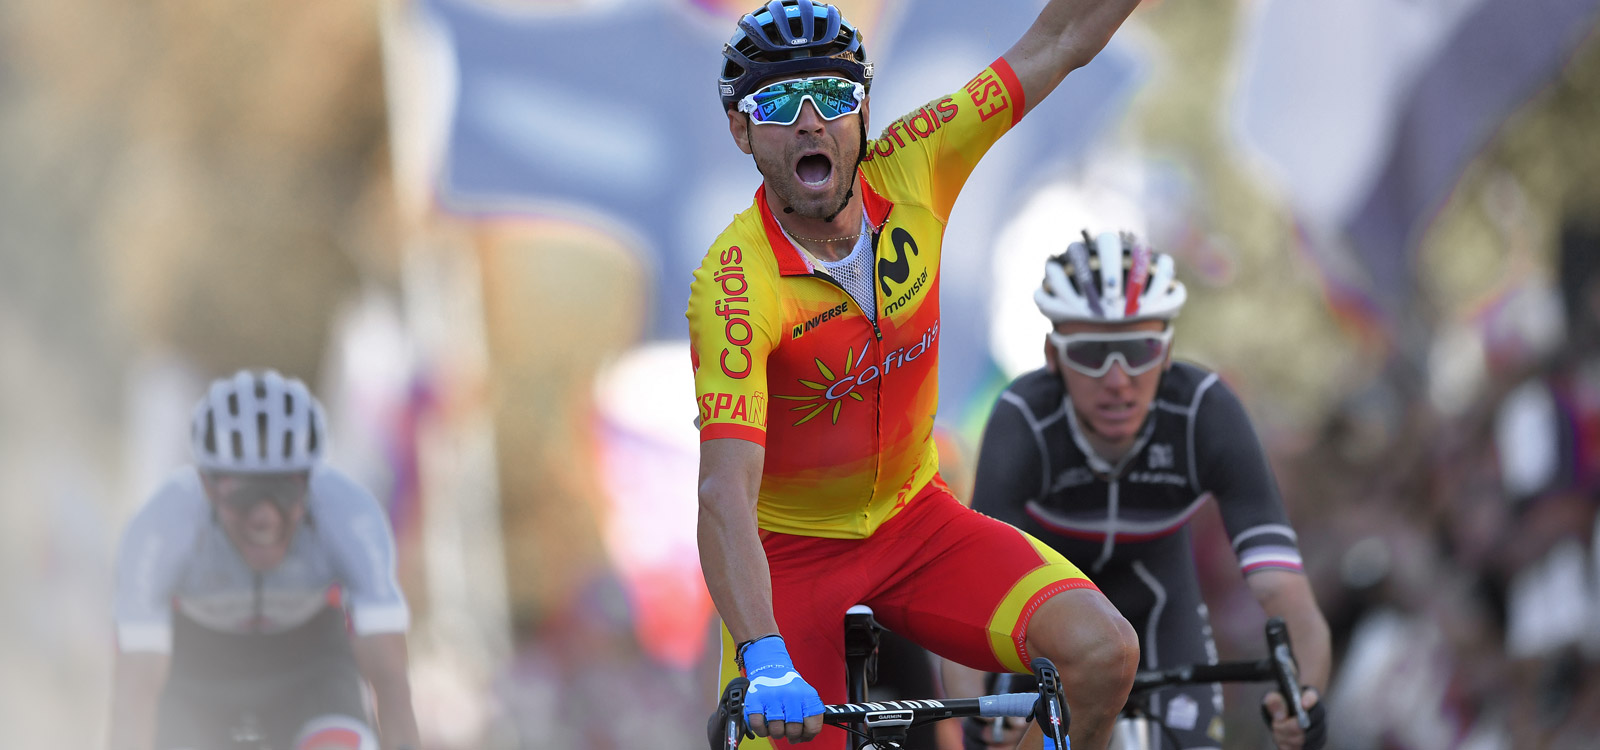 Valverde is World Champion